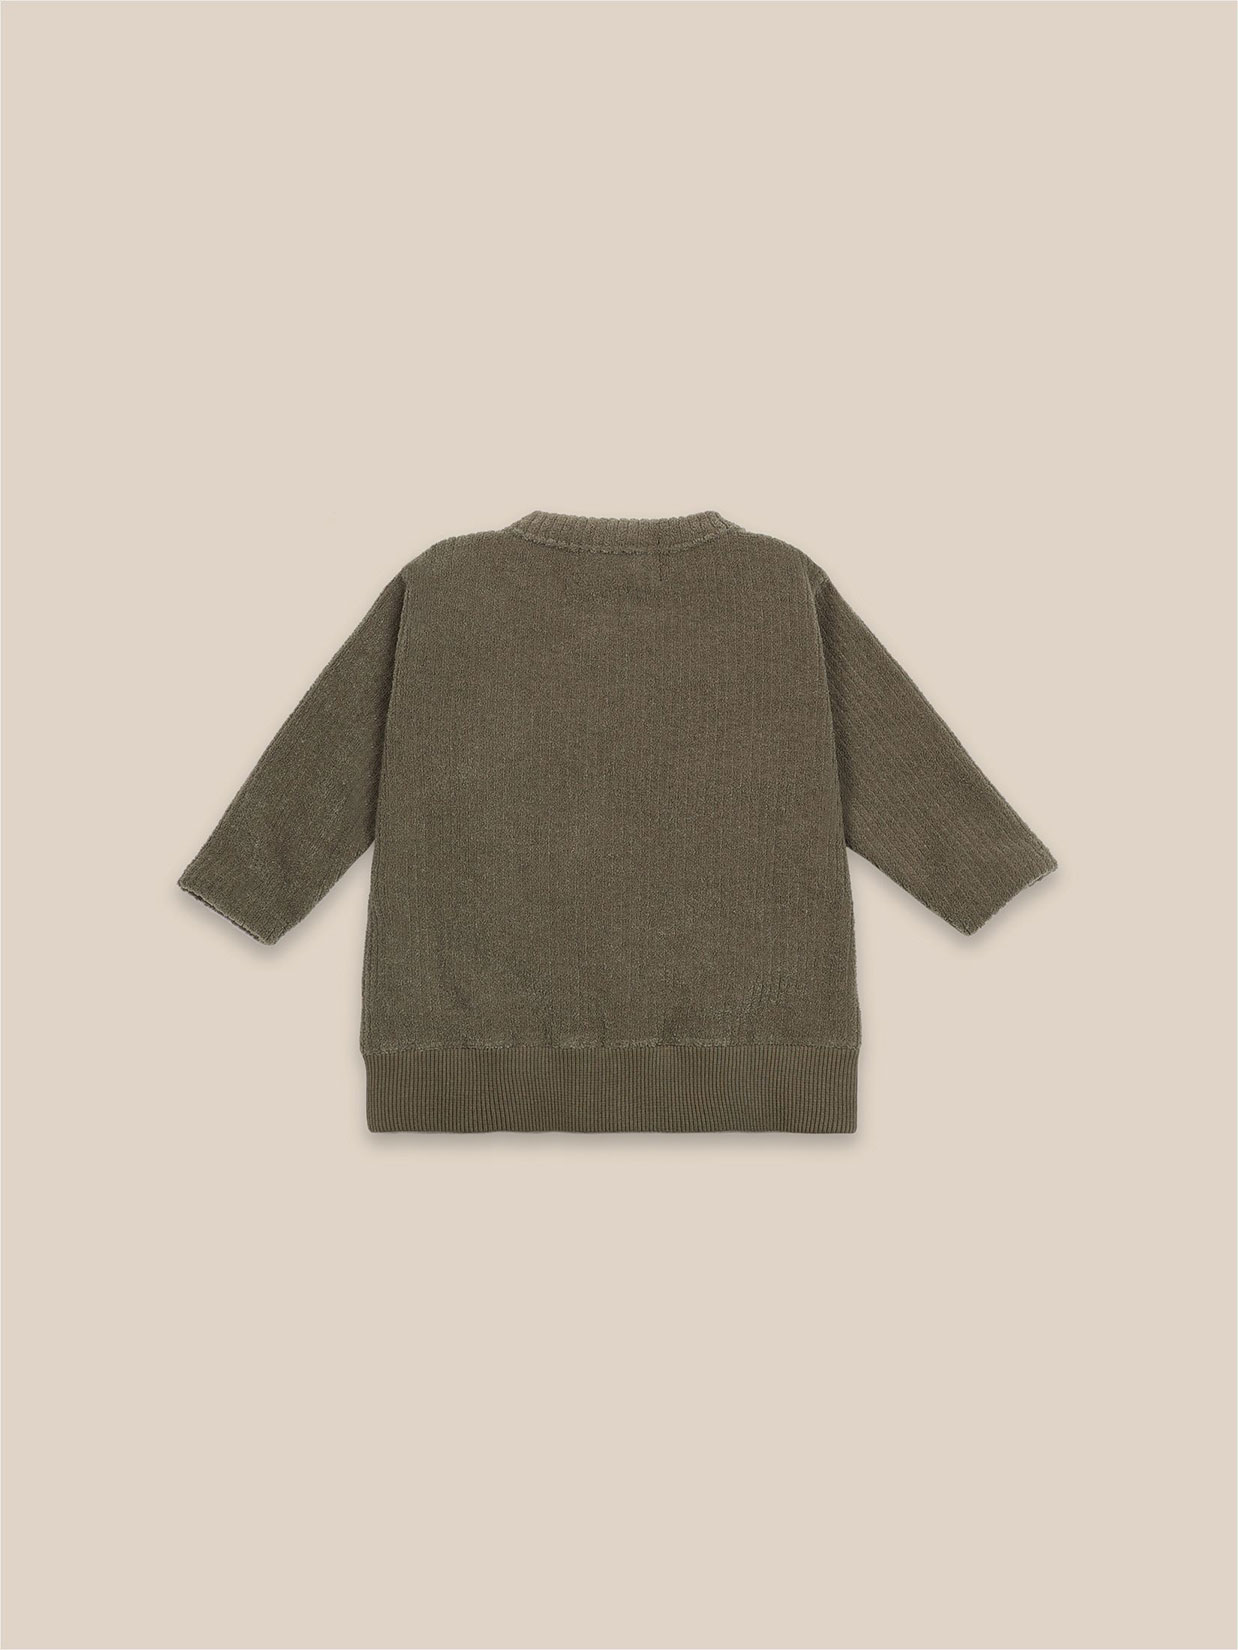 Bobo Choses - Baby Lucky Star Patch Zipped Sweatshirt